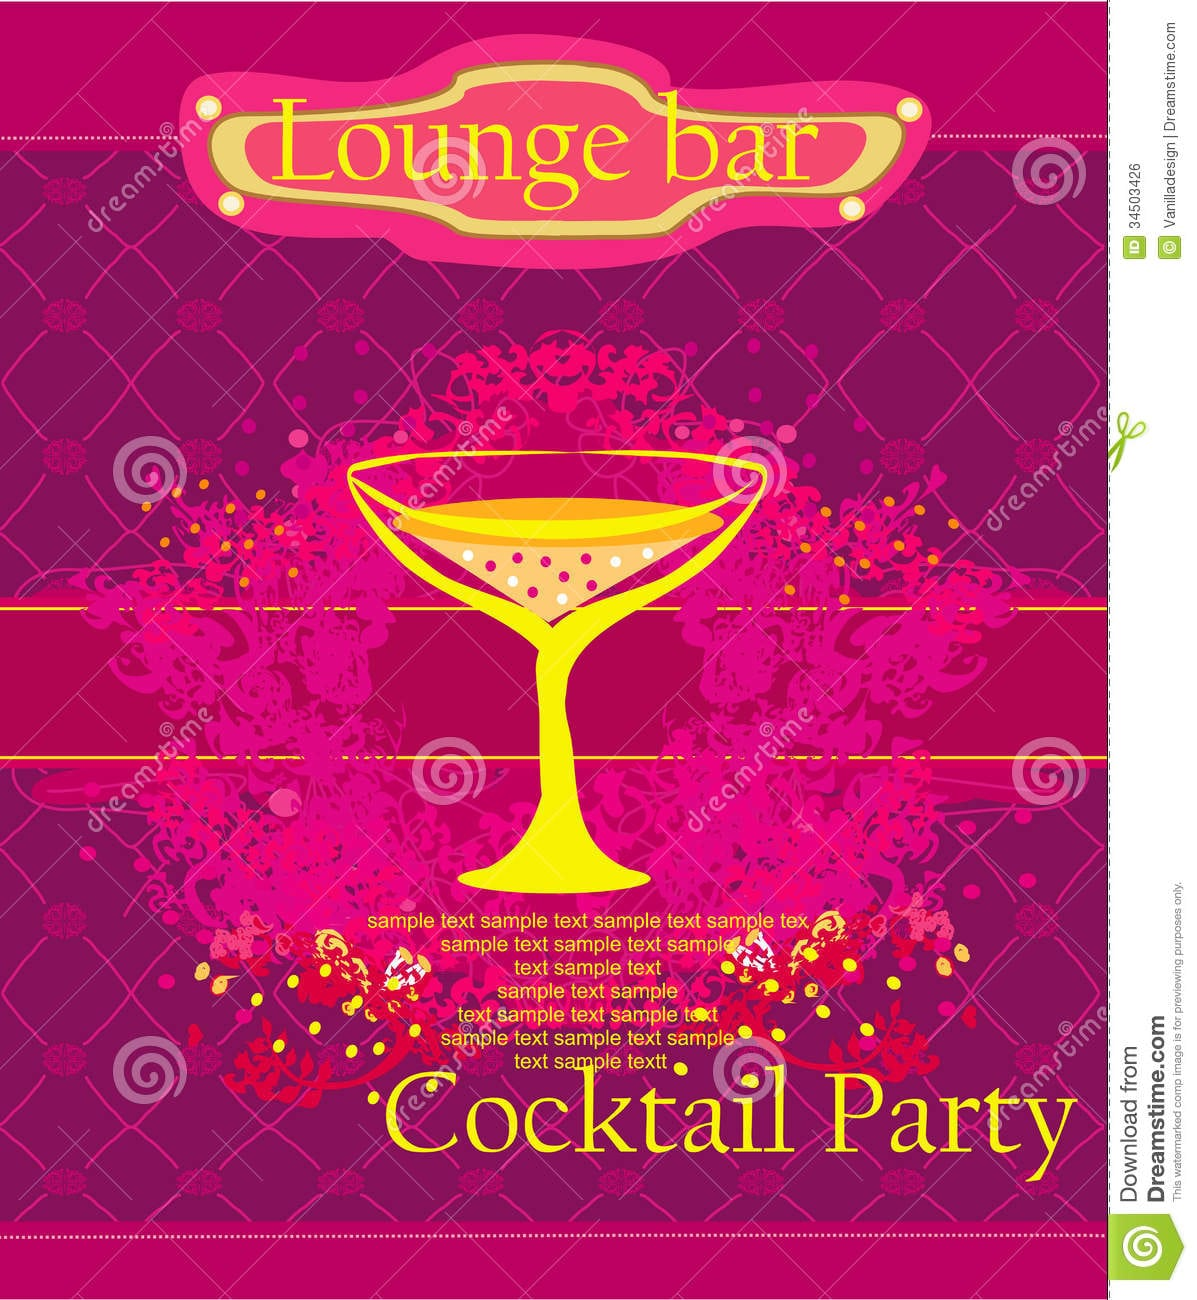 Cocktail Party Invitation Card Stock Illustration